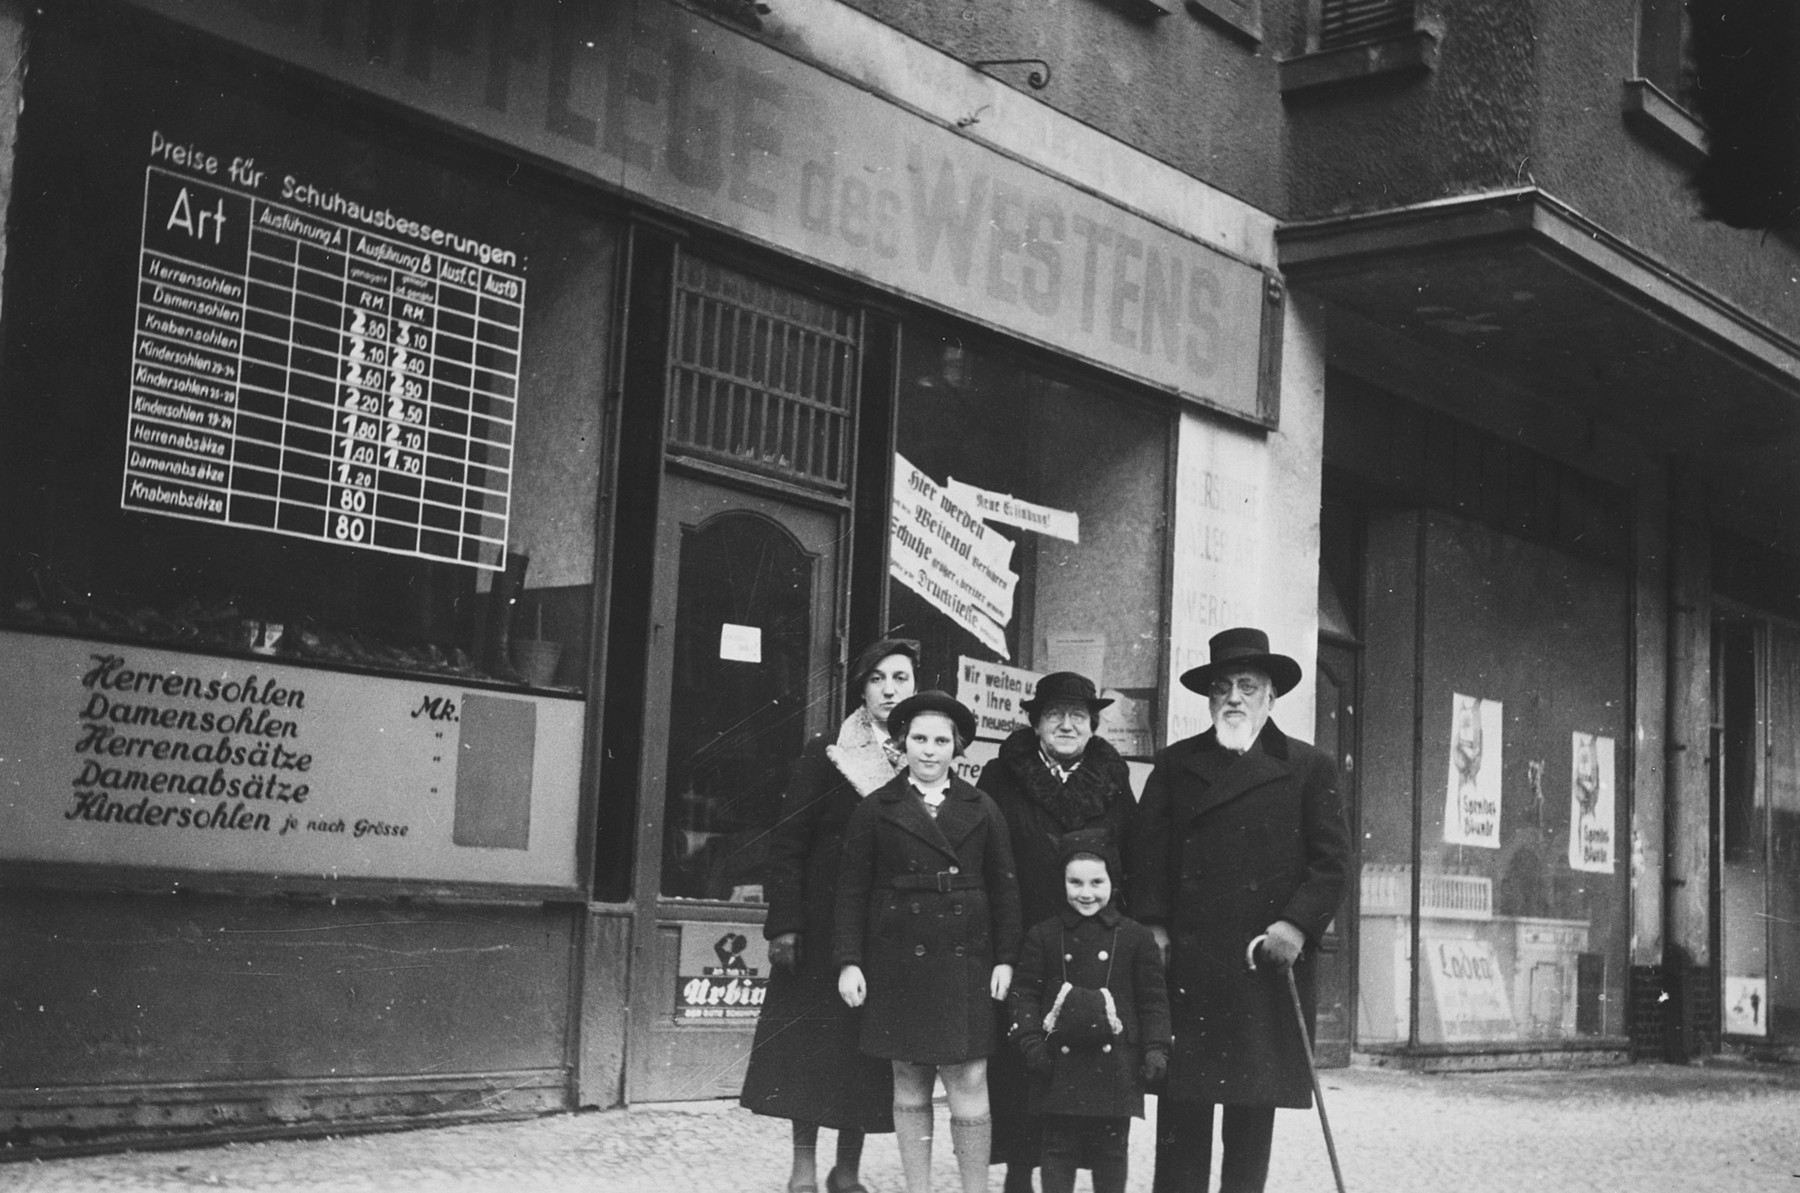 An extended Jewish family poses in front of a store plastered with posters in Berlin.  Pictured are Hetty Fisch, her grandparents and cousins.